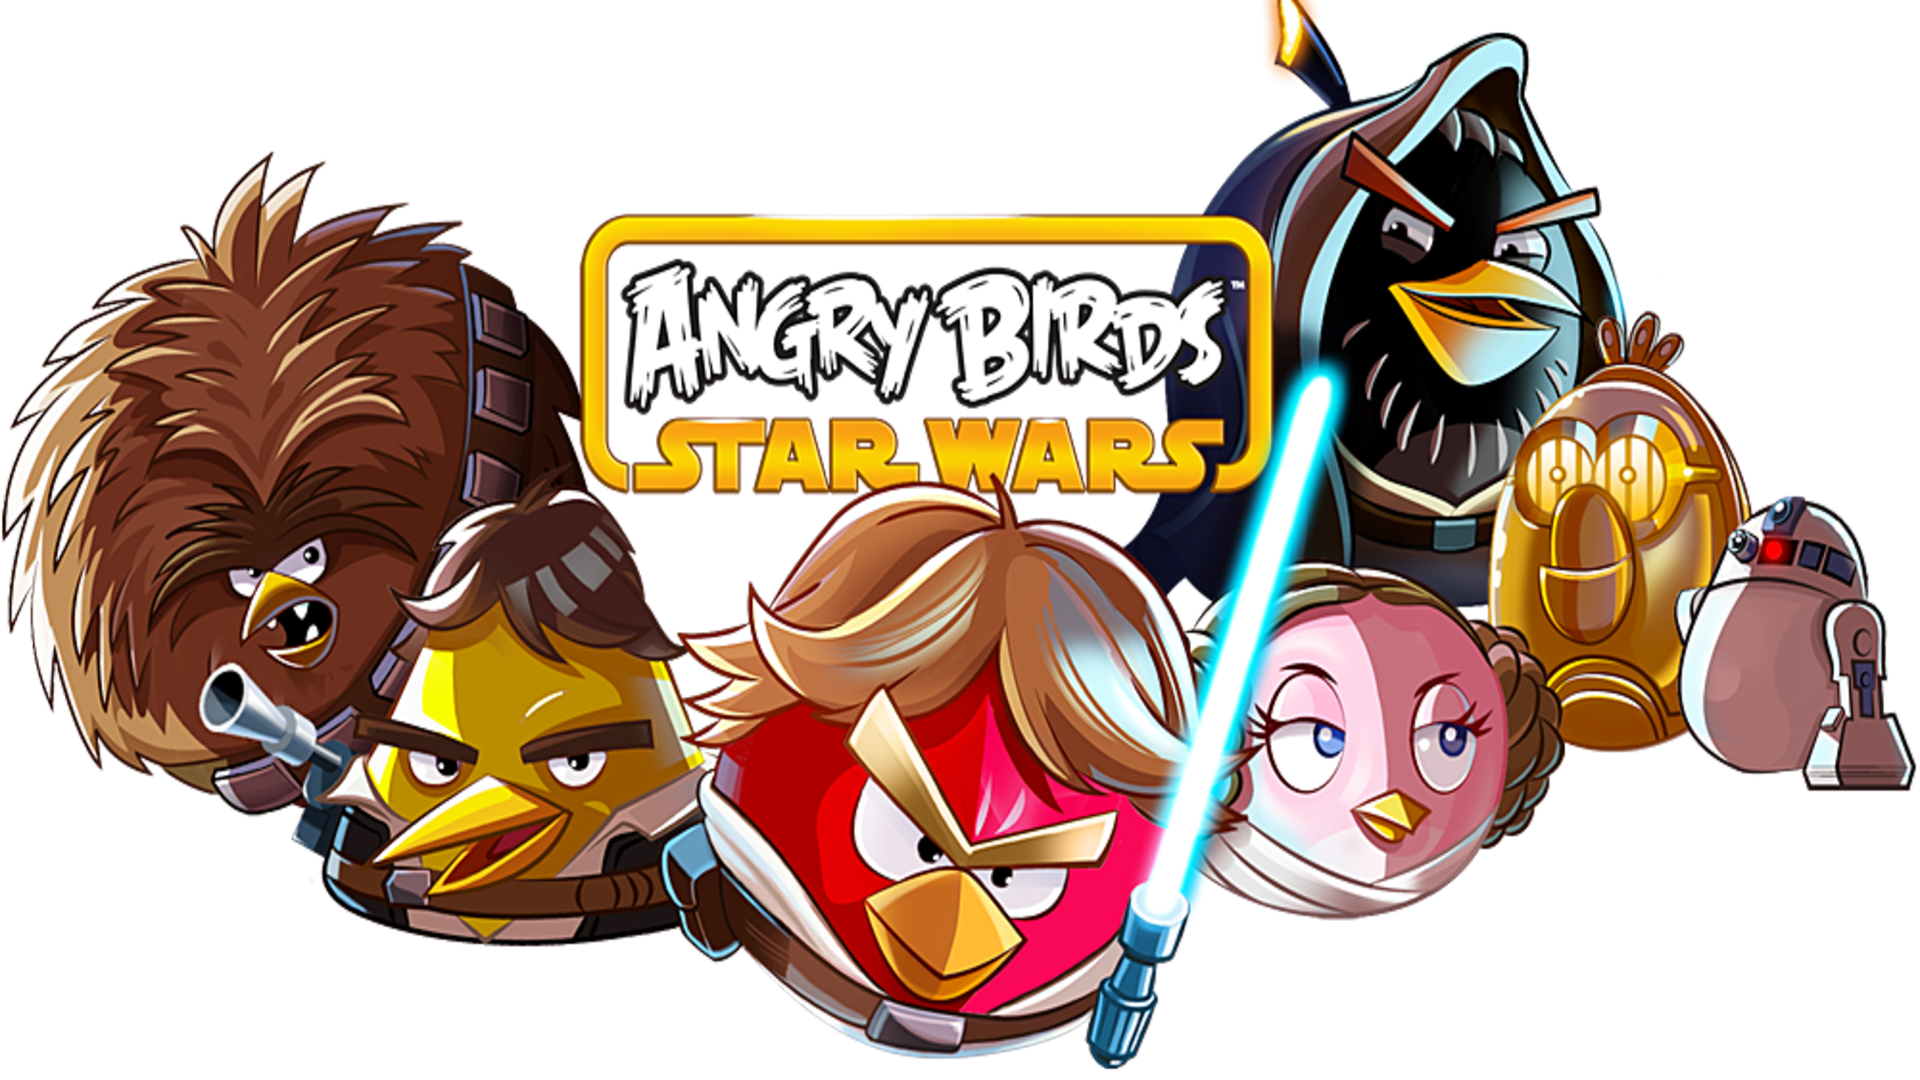 Angry birds star wars wallpaper 7 - Angry birds star wars 8 ...